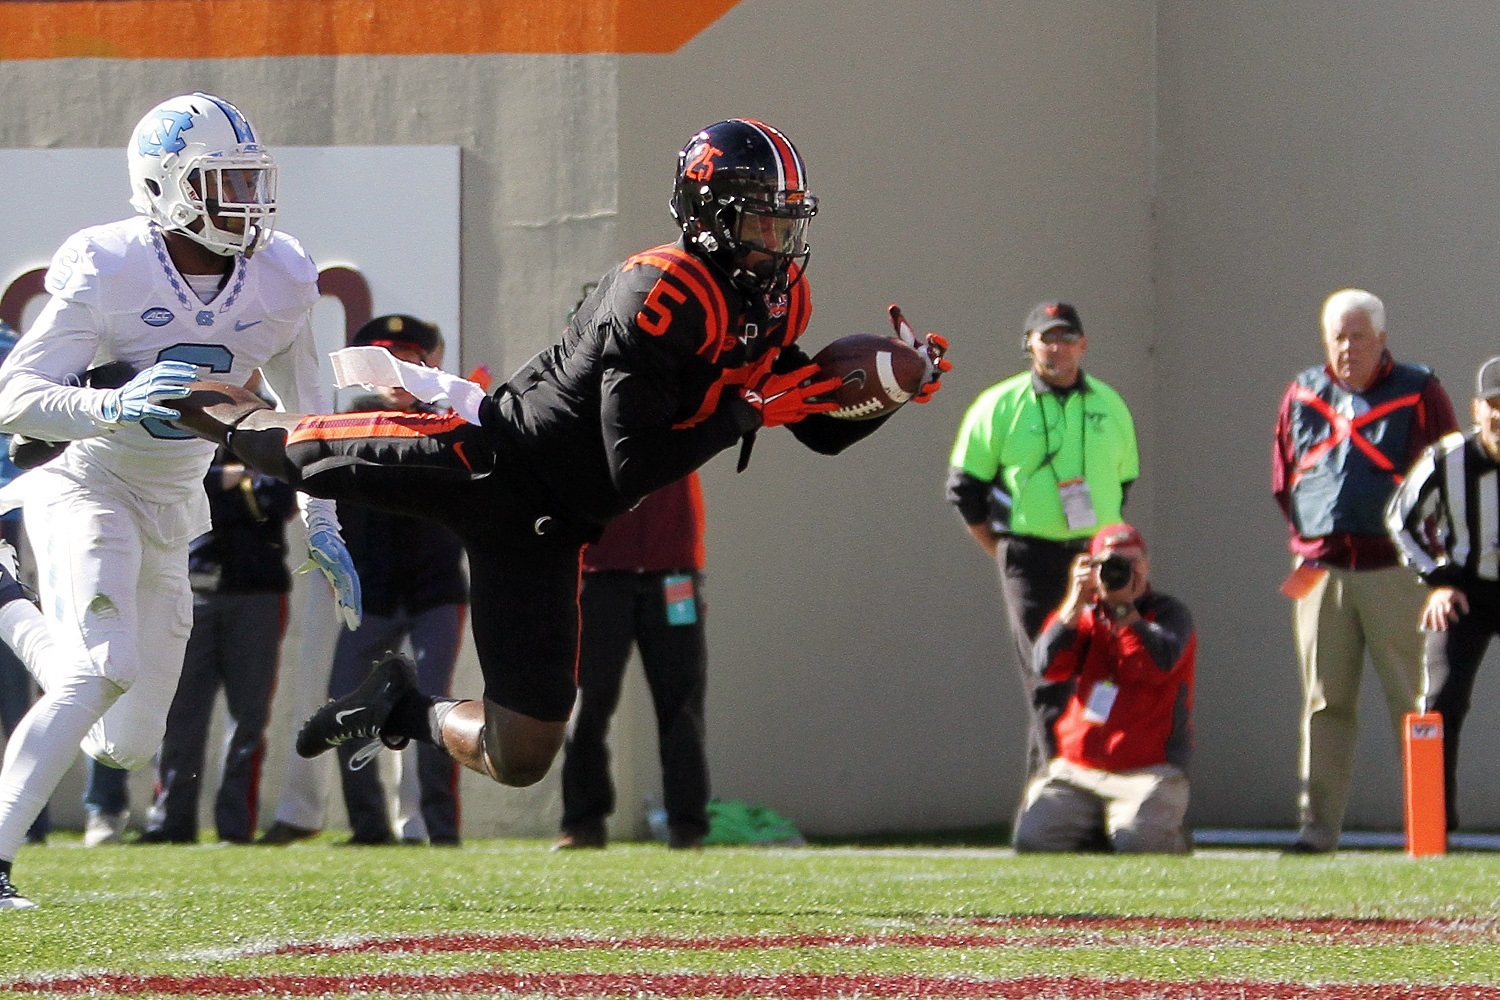 Cam Phillips dropped what could have been a touchdown, and the Hokies had to settle for a field goal.